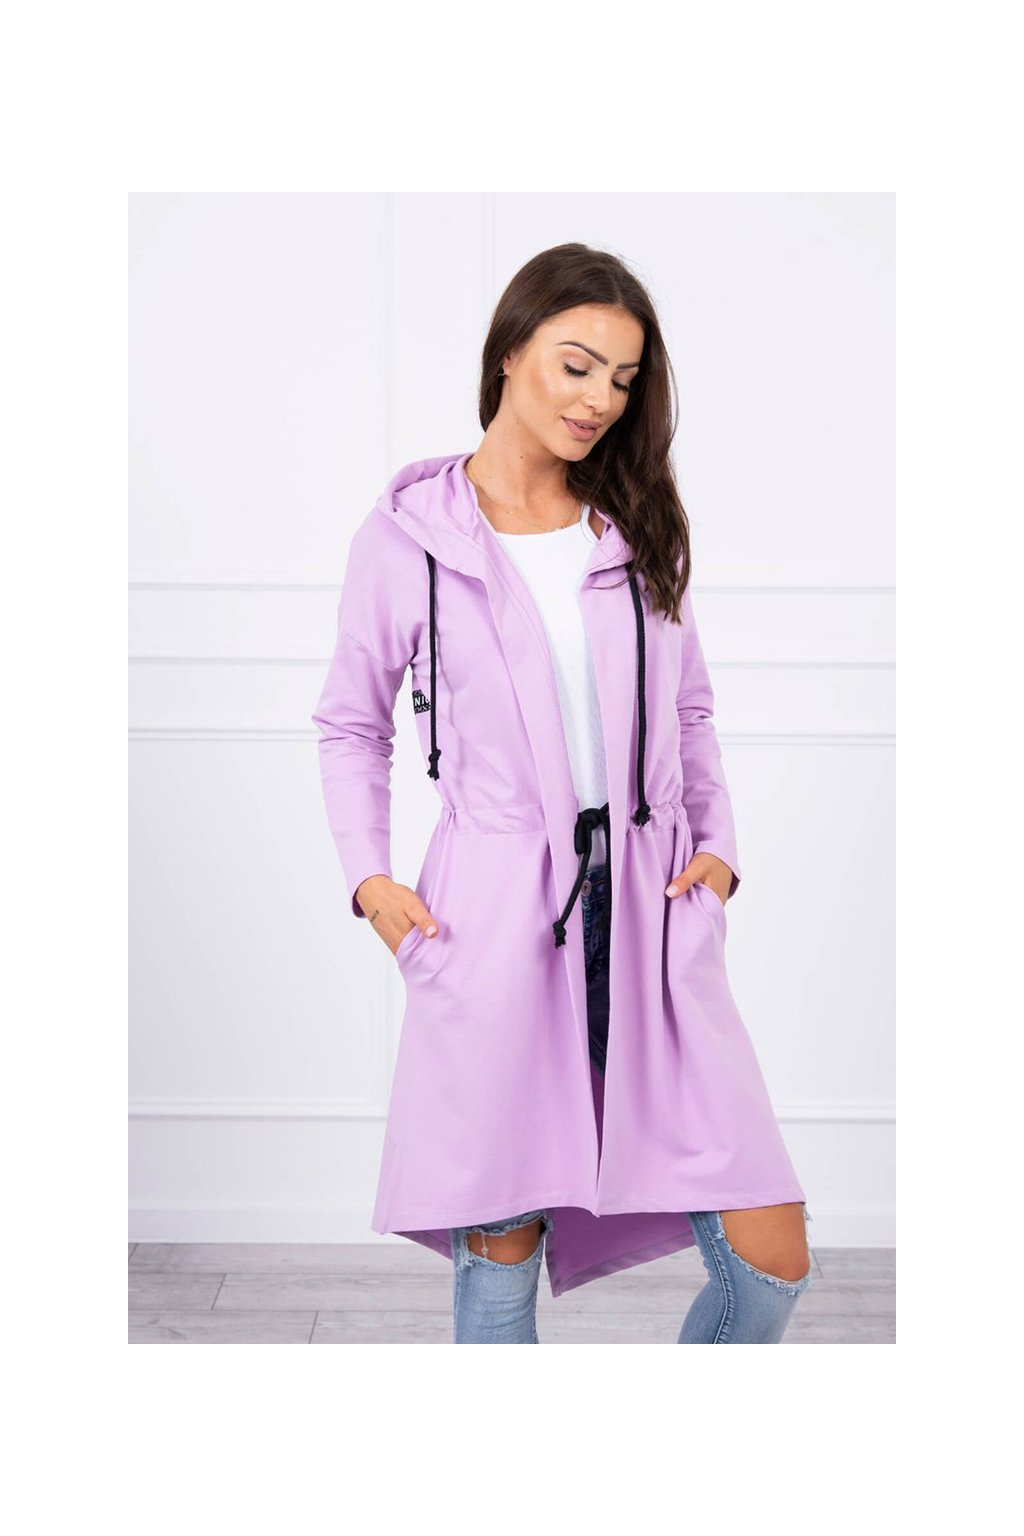 eng pl Coatee with longer back purple 17638 2